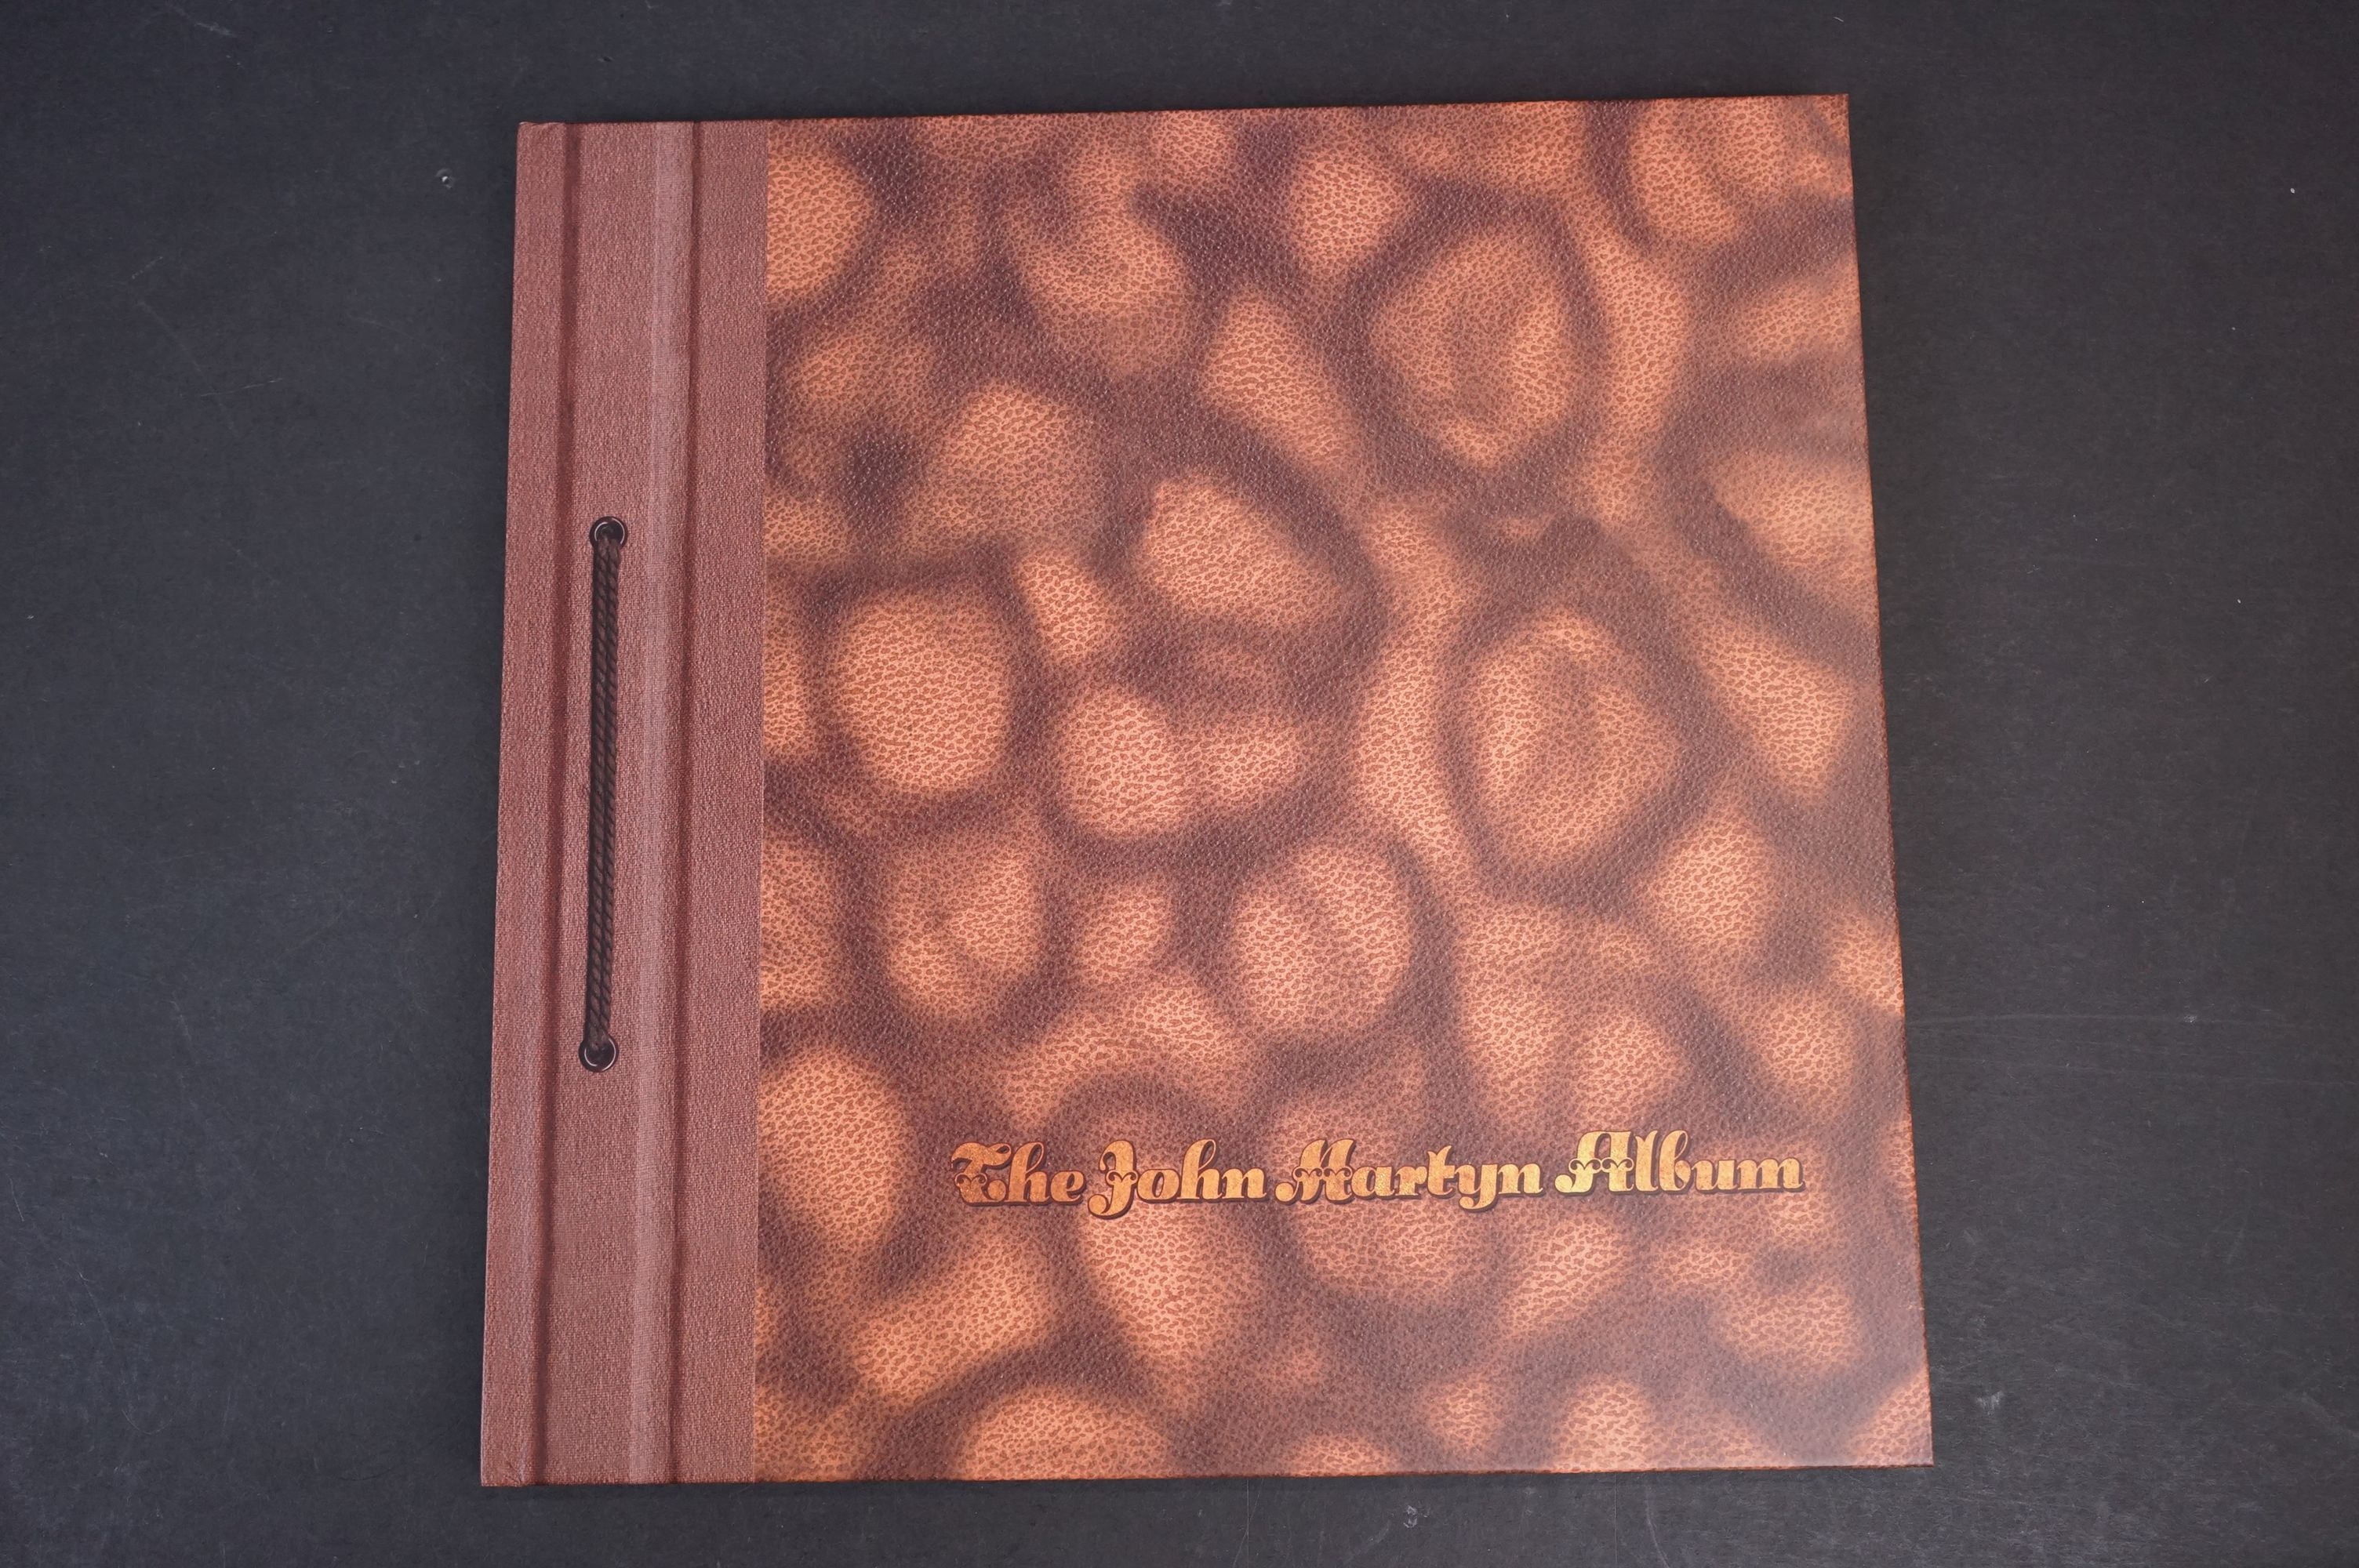 CD / DVD / Vinyl - John Martyn The Island Years 374228-8 complete and ex - Image 3 of 10